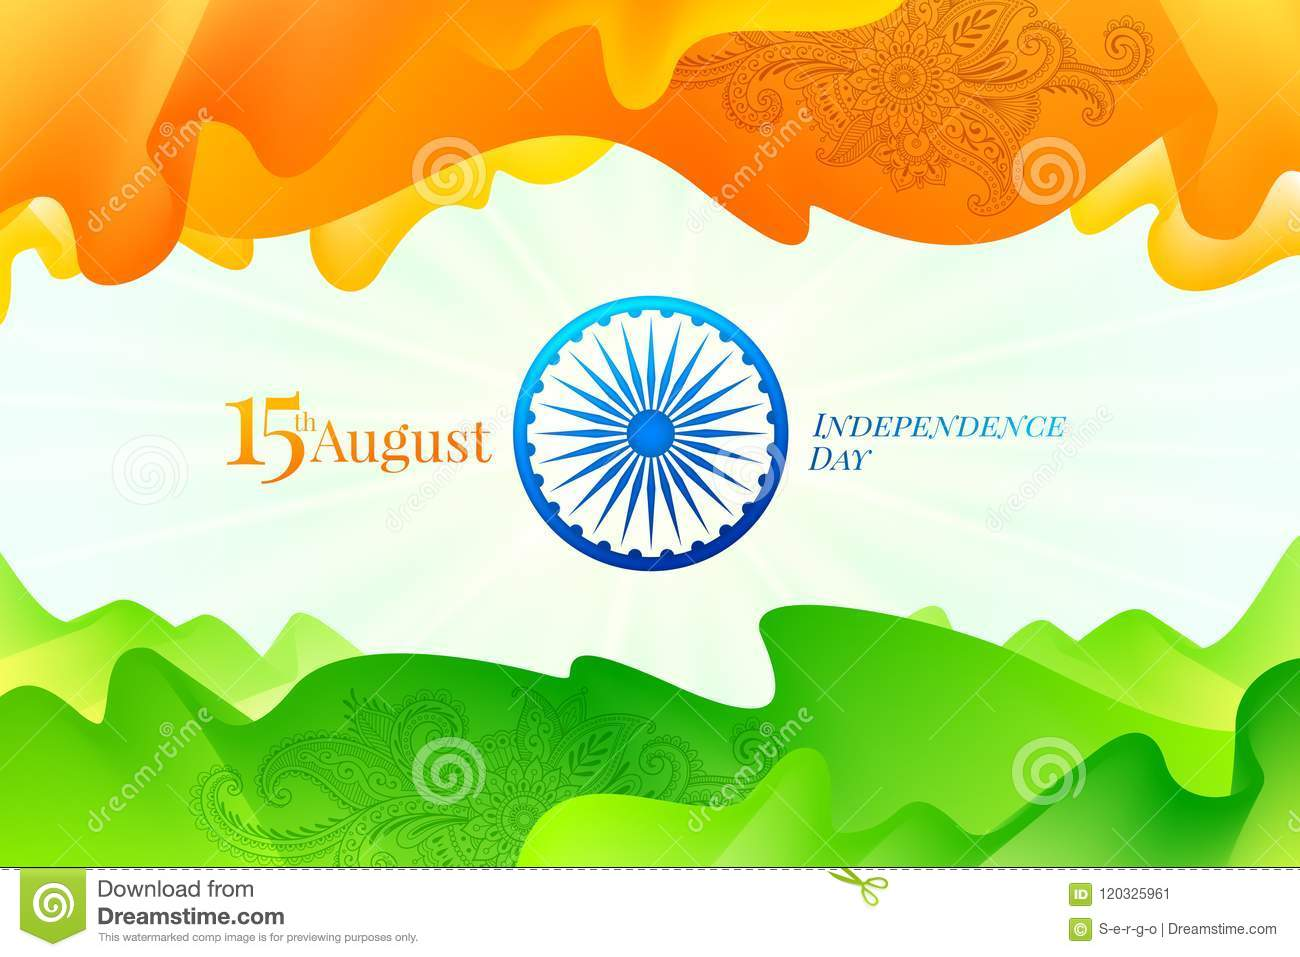 India Independence Day Abstract Indian Flag Fluid Shapes With